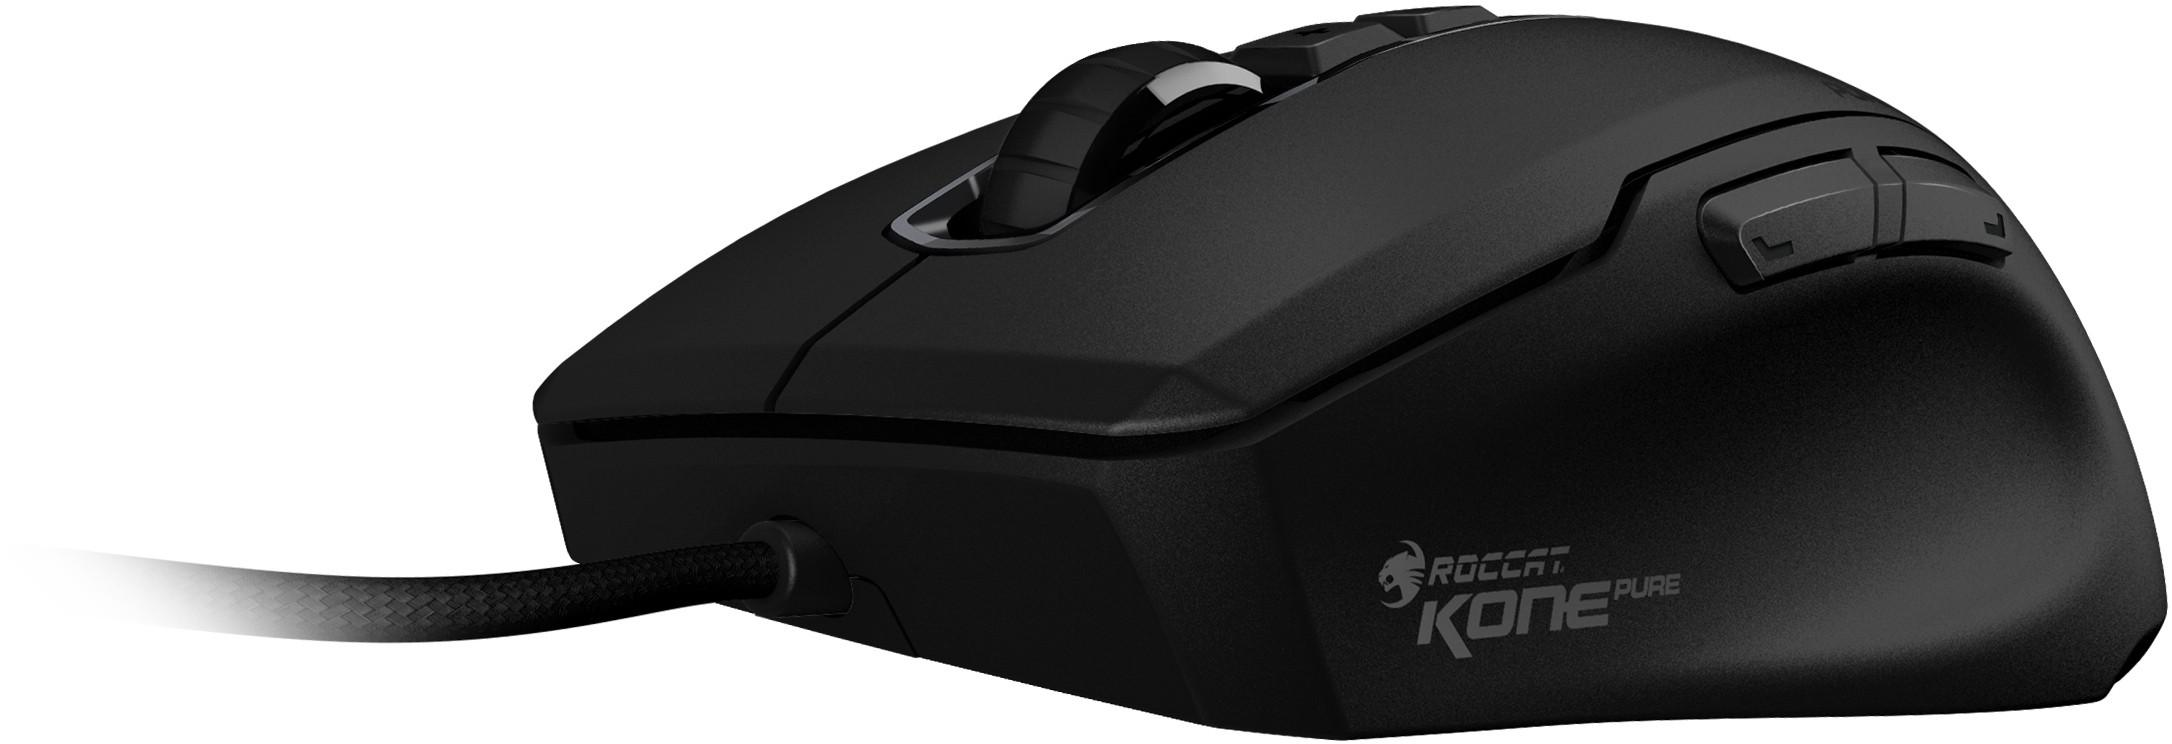 e39b0df9289 ... Pelė ROCCAT KONE PURE OWL-EYE - GAMING MOUSE, 9 BUTTONS, RGB, ...